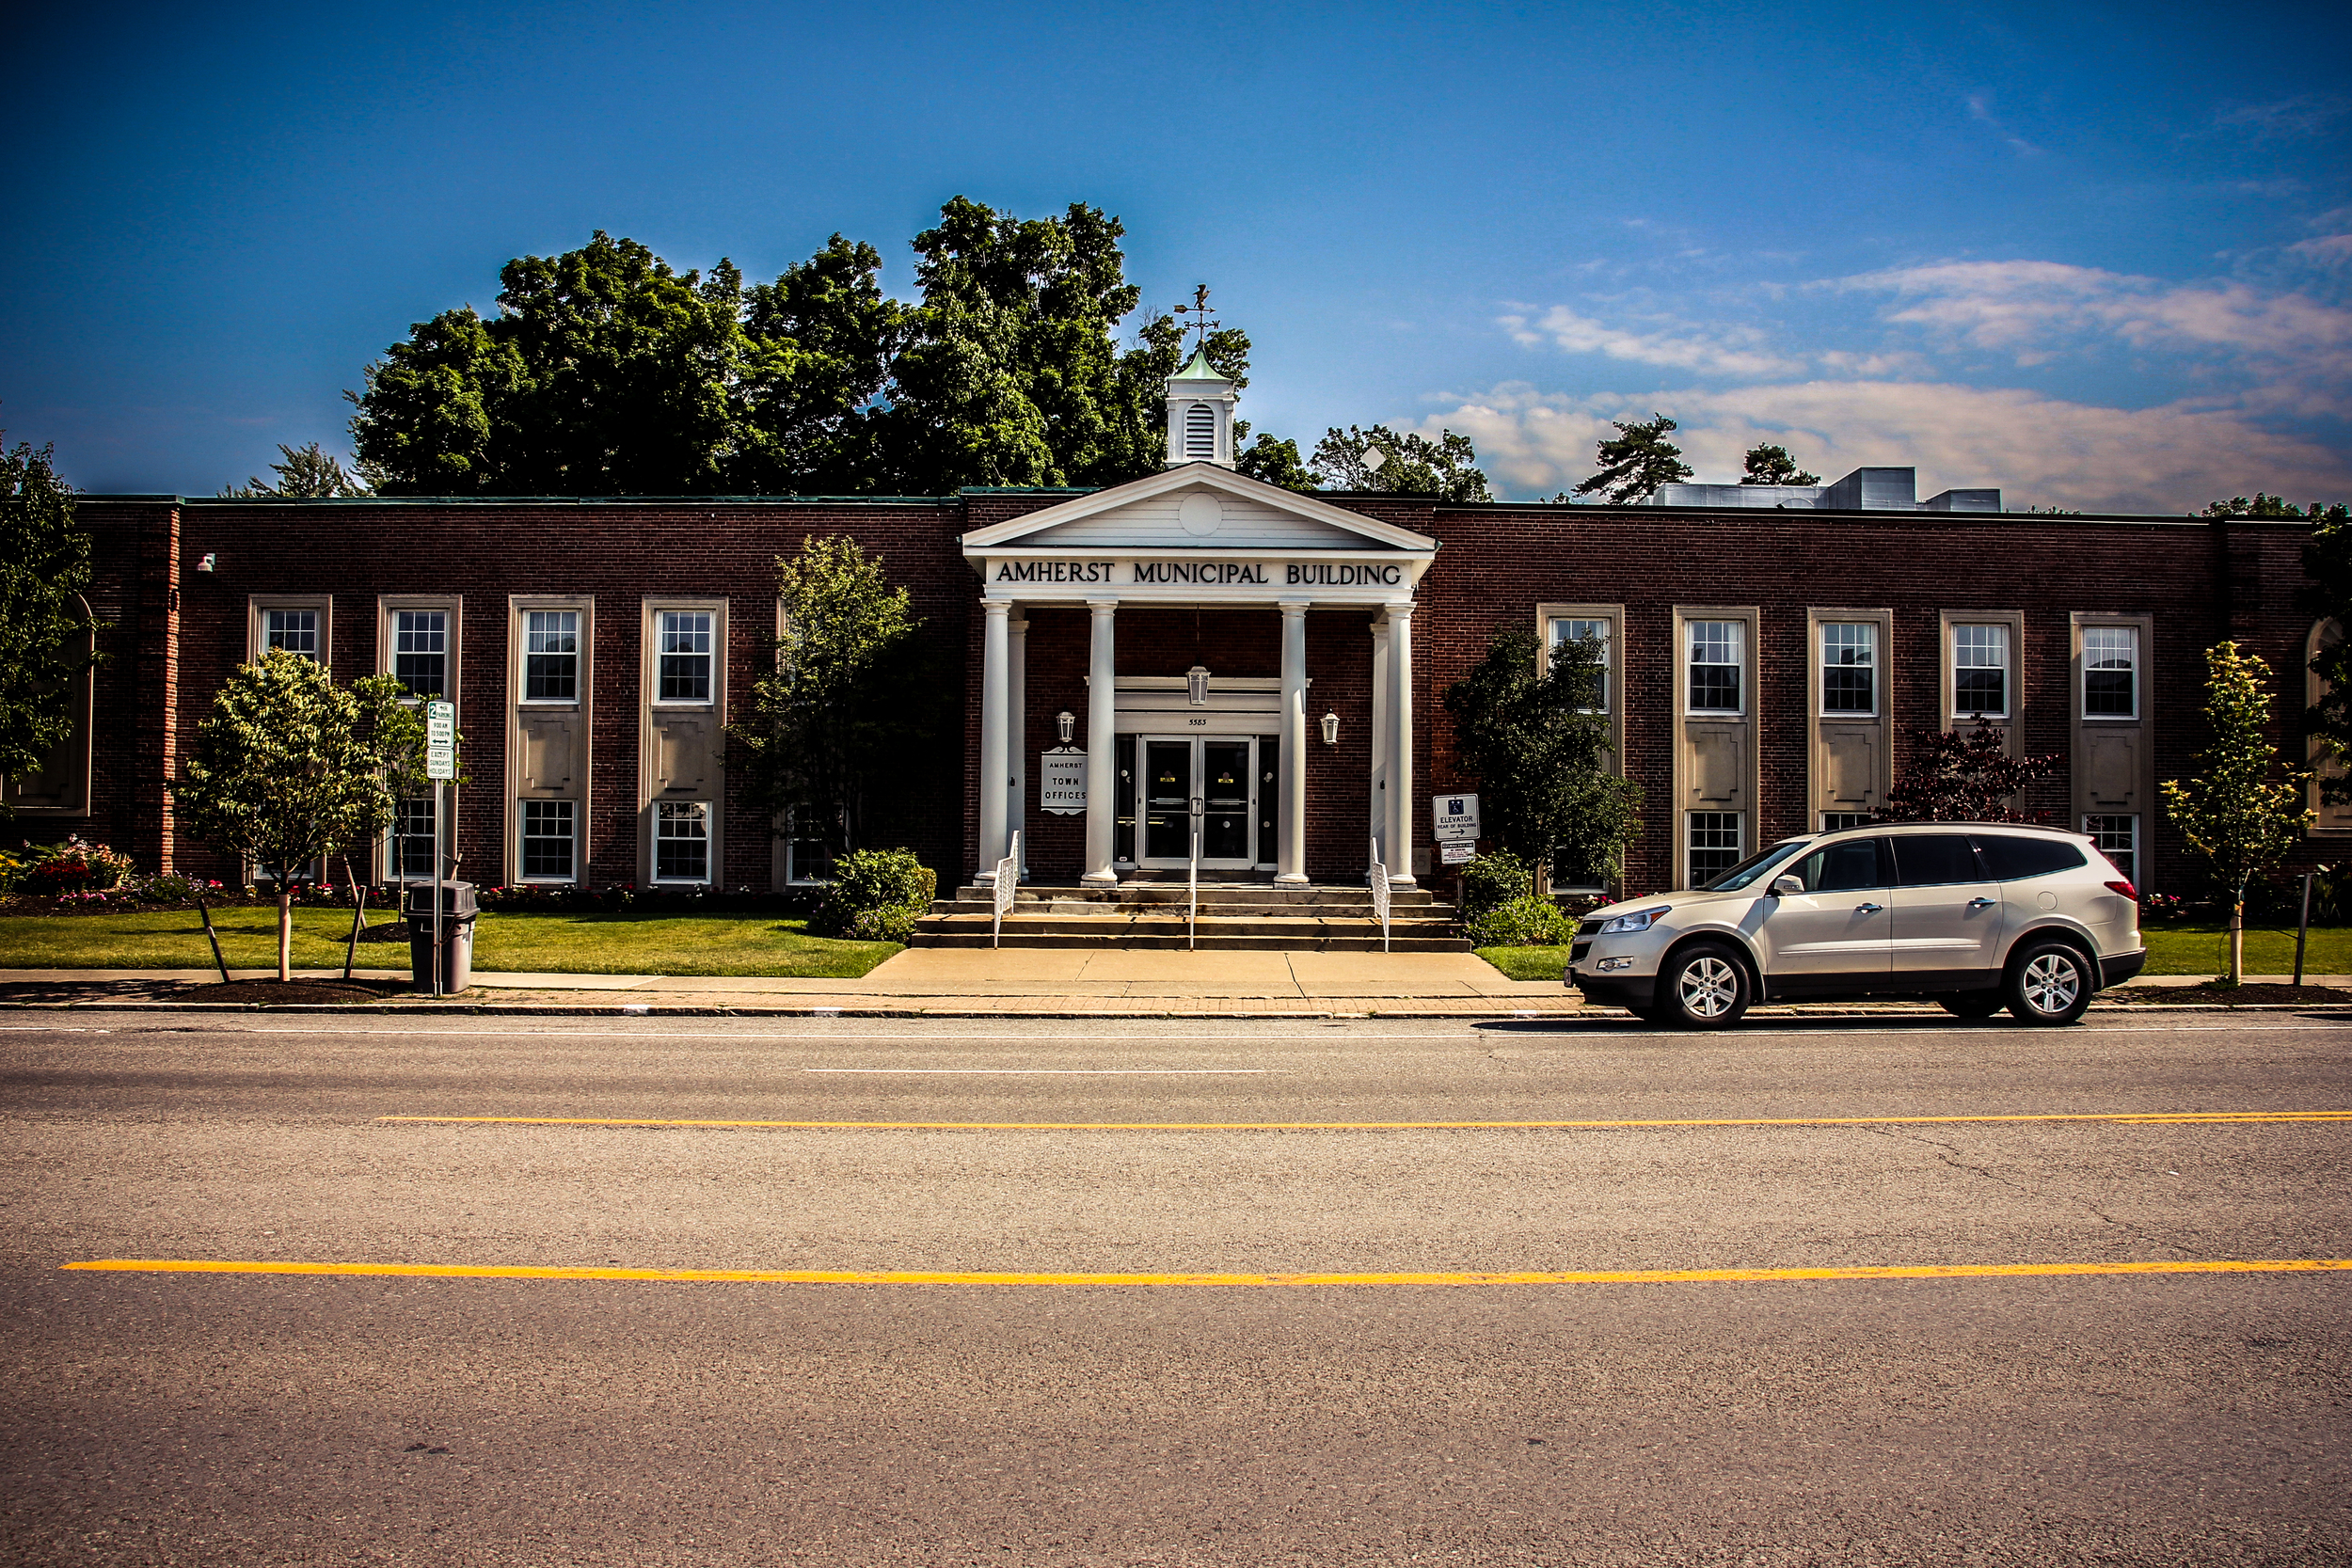 Amherst Municipal Building in Williamsville, NY.